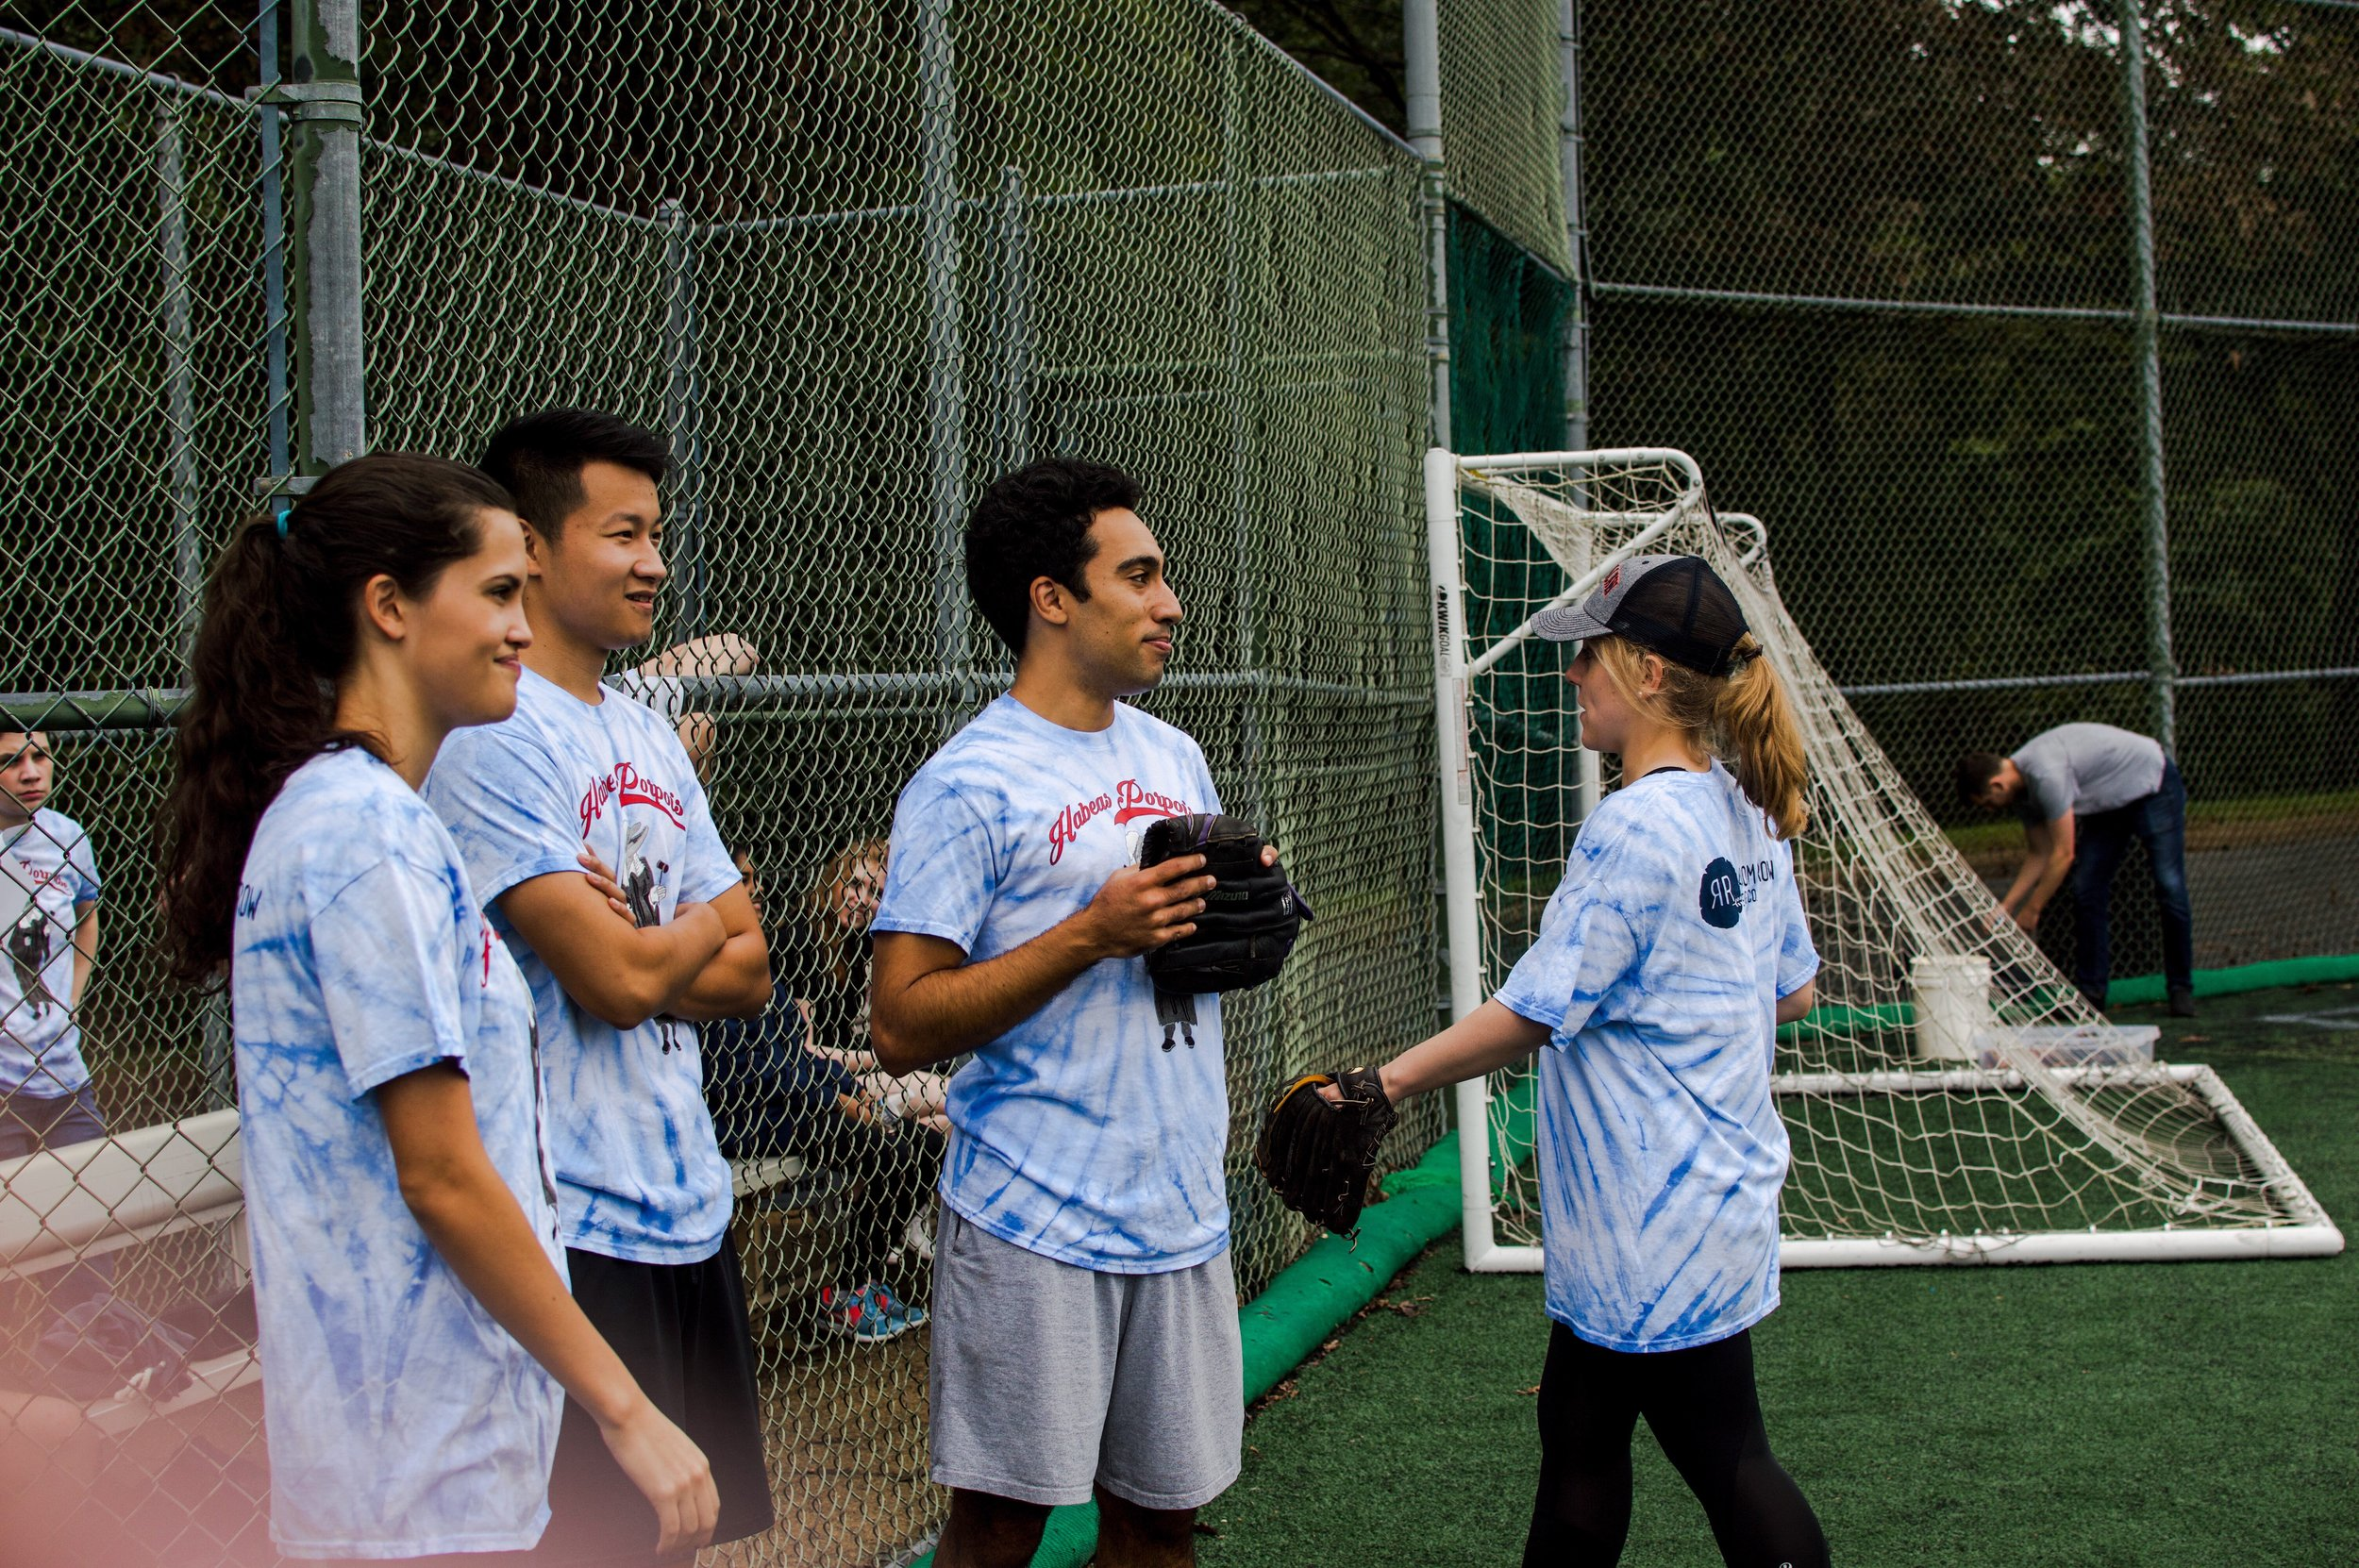 Members of the victorious Habeas Porpoise warm up. Photos Kolleen Gladden, '21 / Virginia Law Weekly